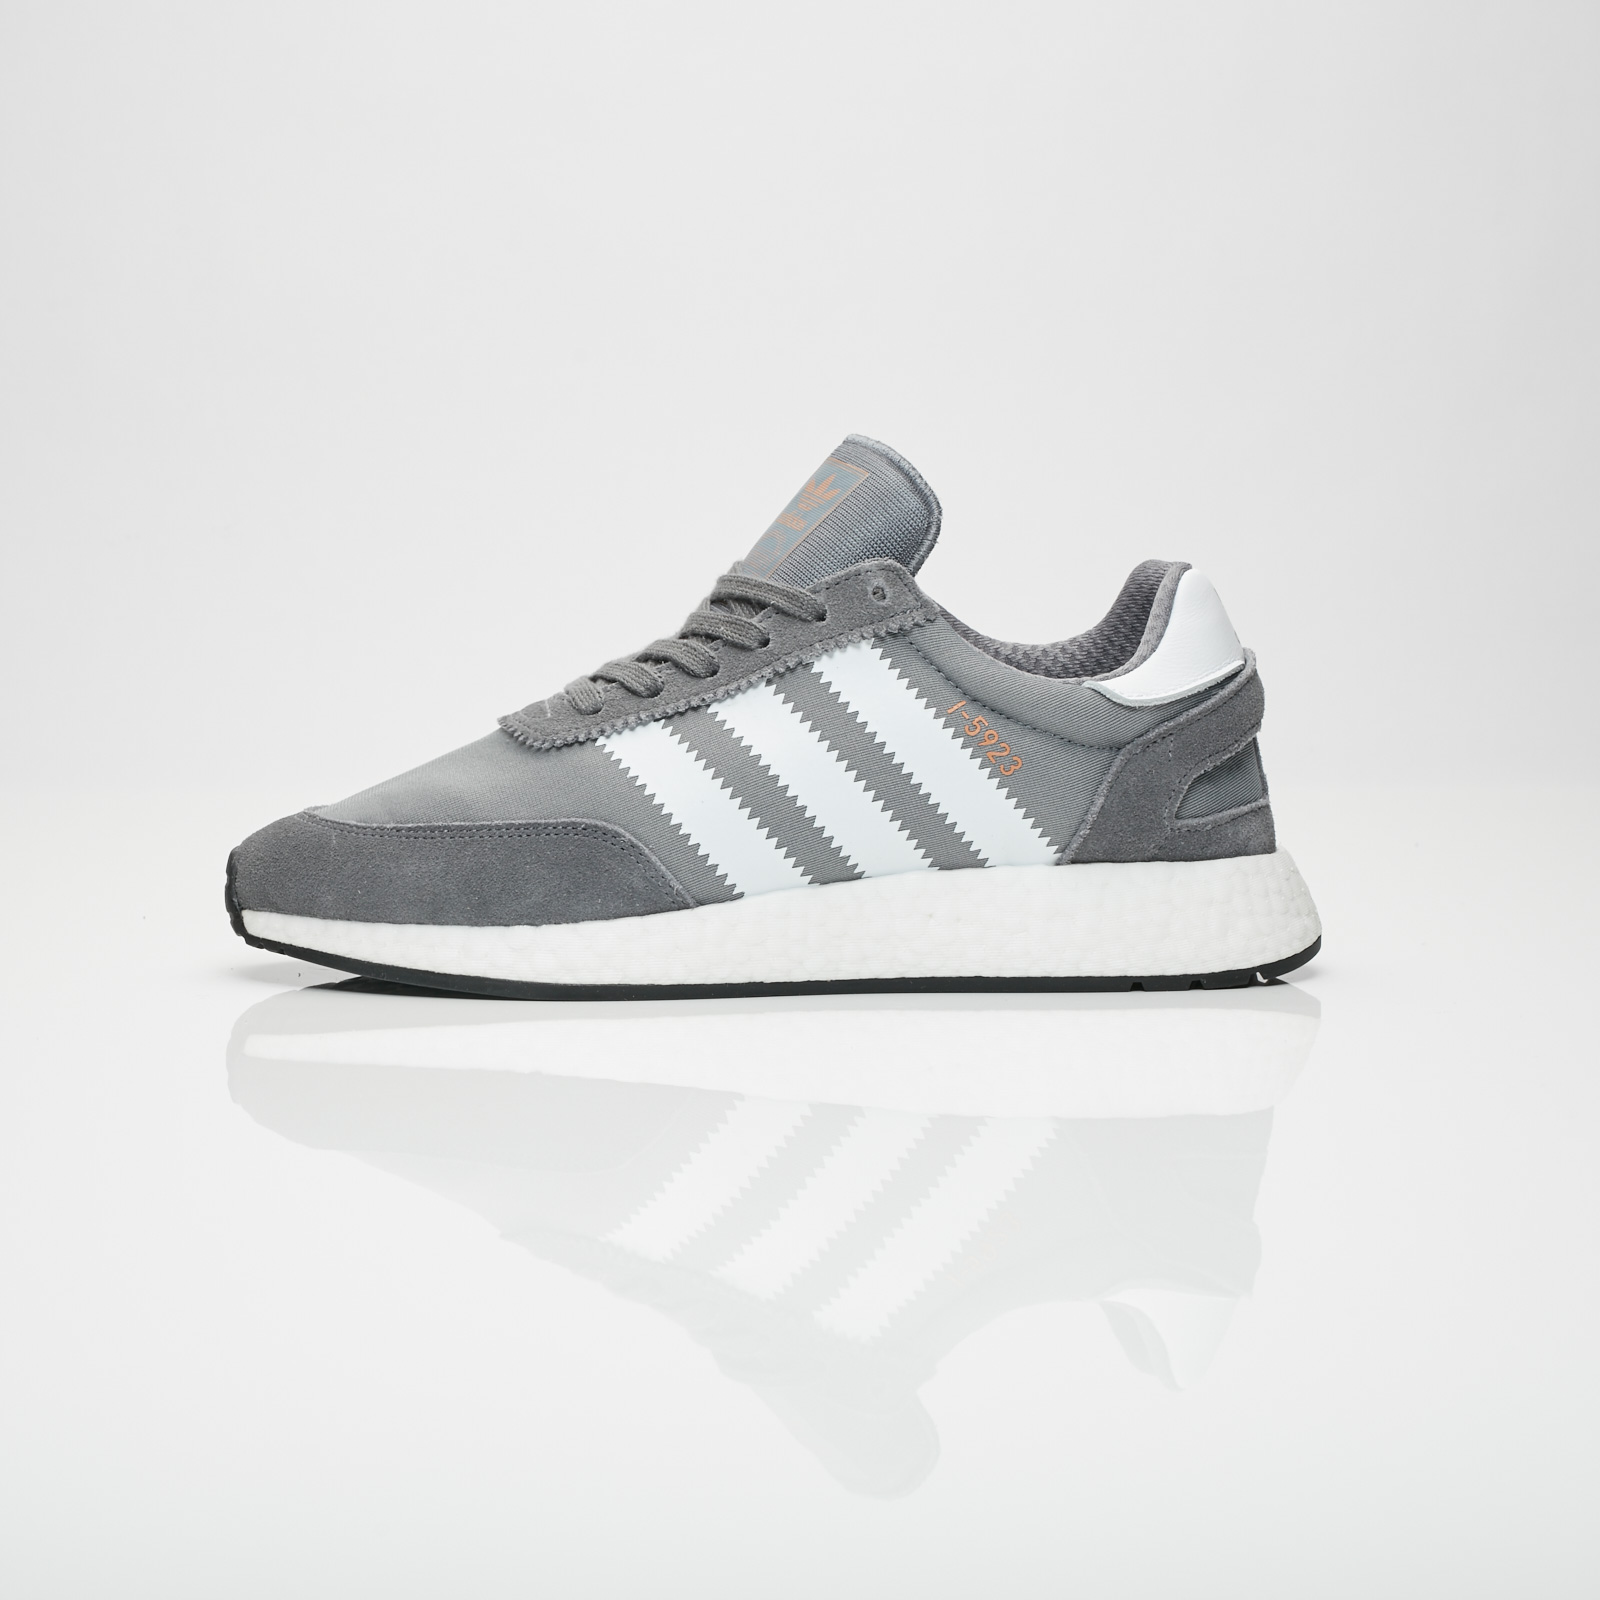 hot sales excellent quality special sales adidas I-5923 - Bb2089 - Sneakersnstuff | sneakers ...